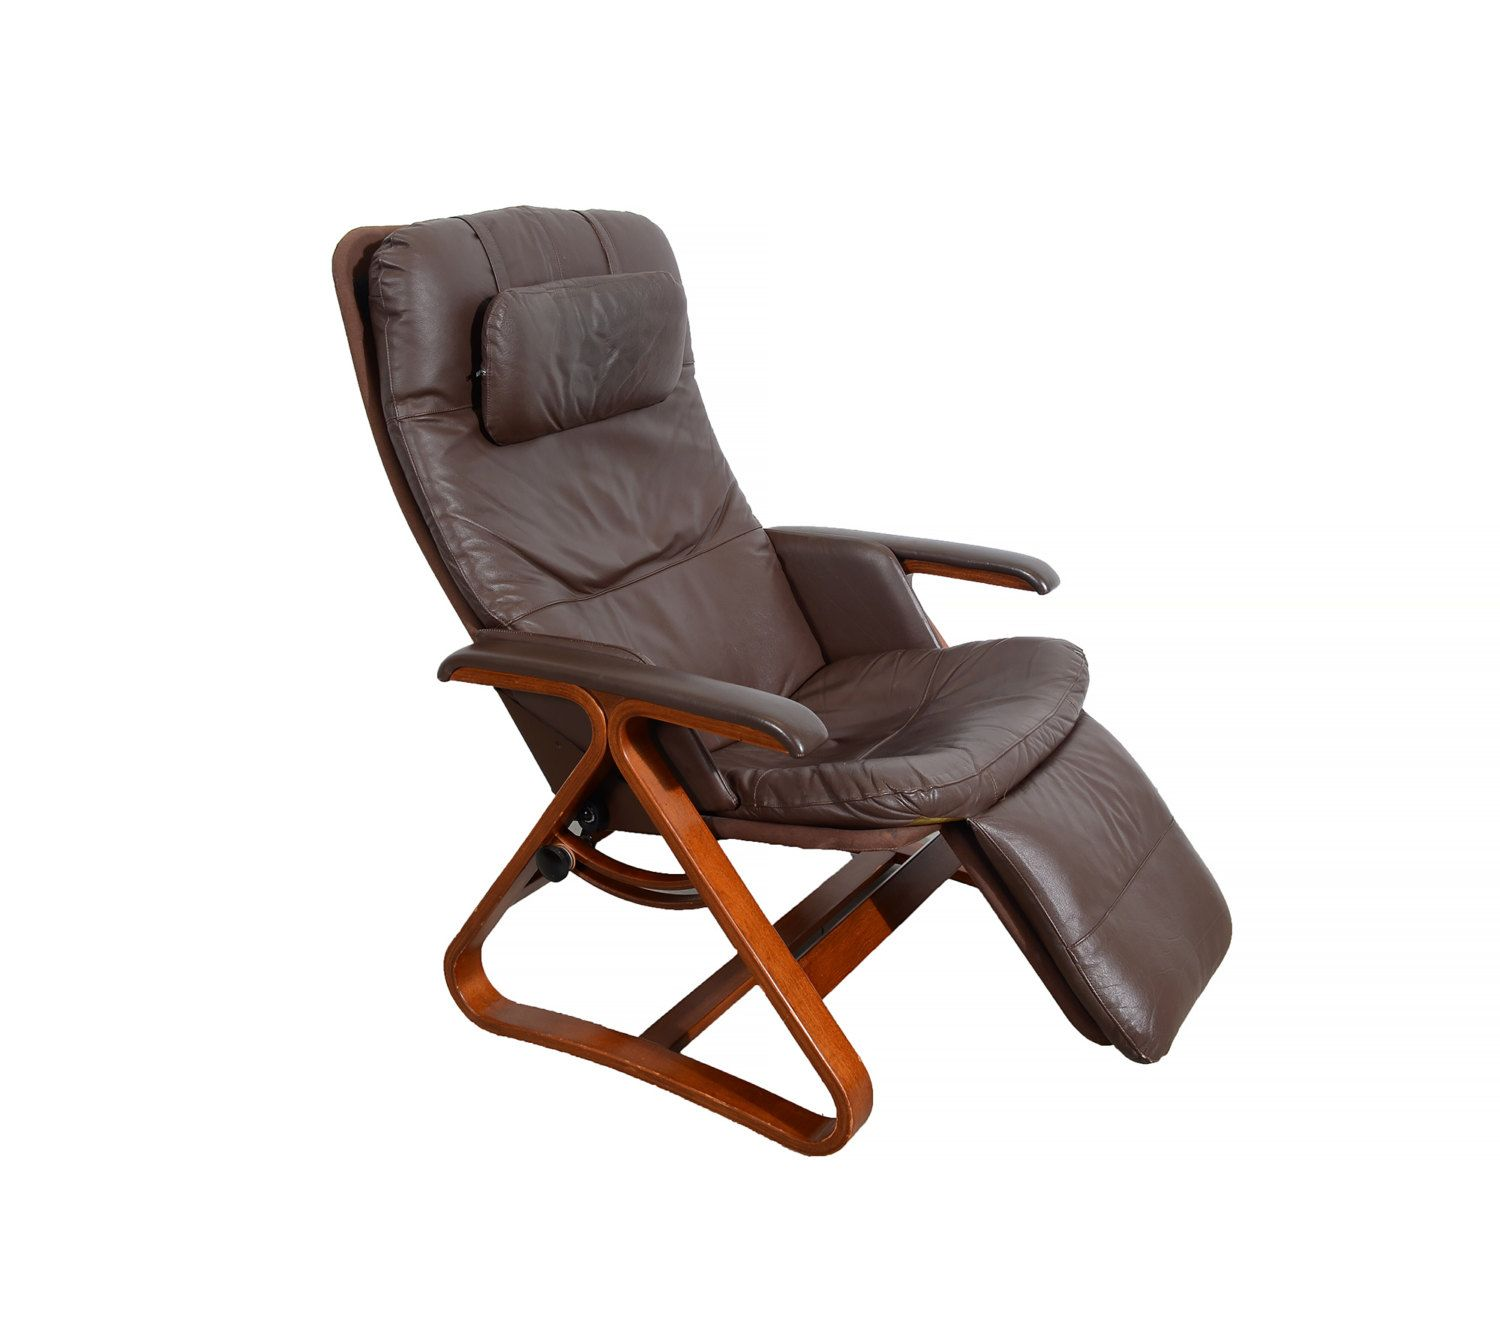 leather lounge chair backsaver zero gravity chair danish modern